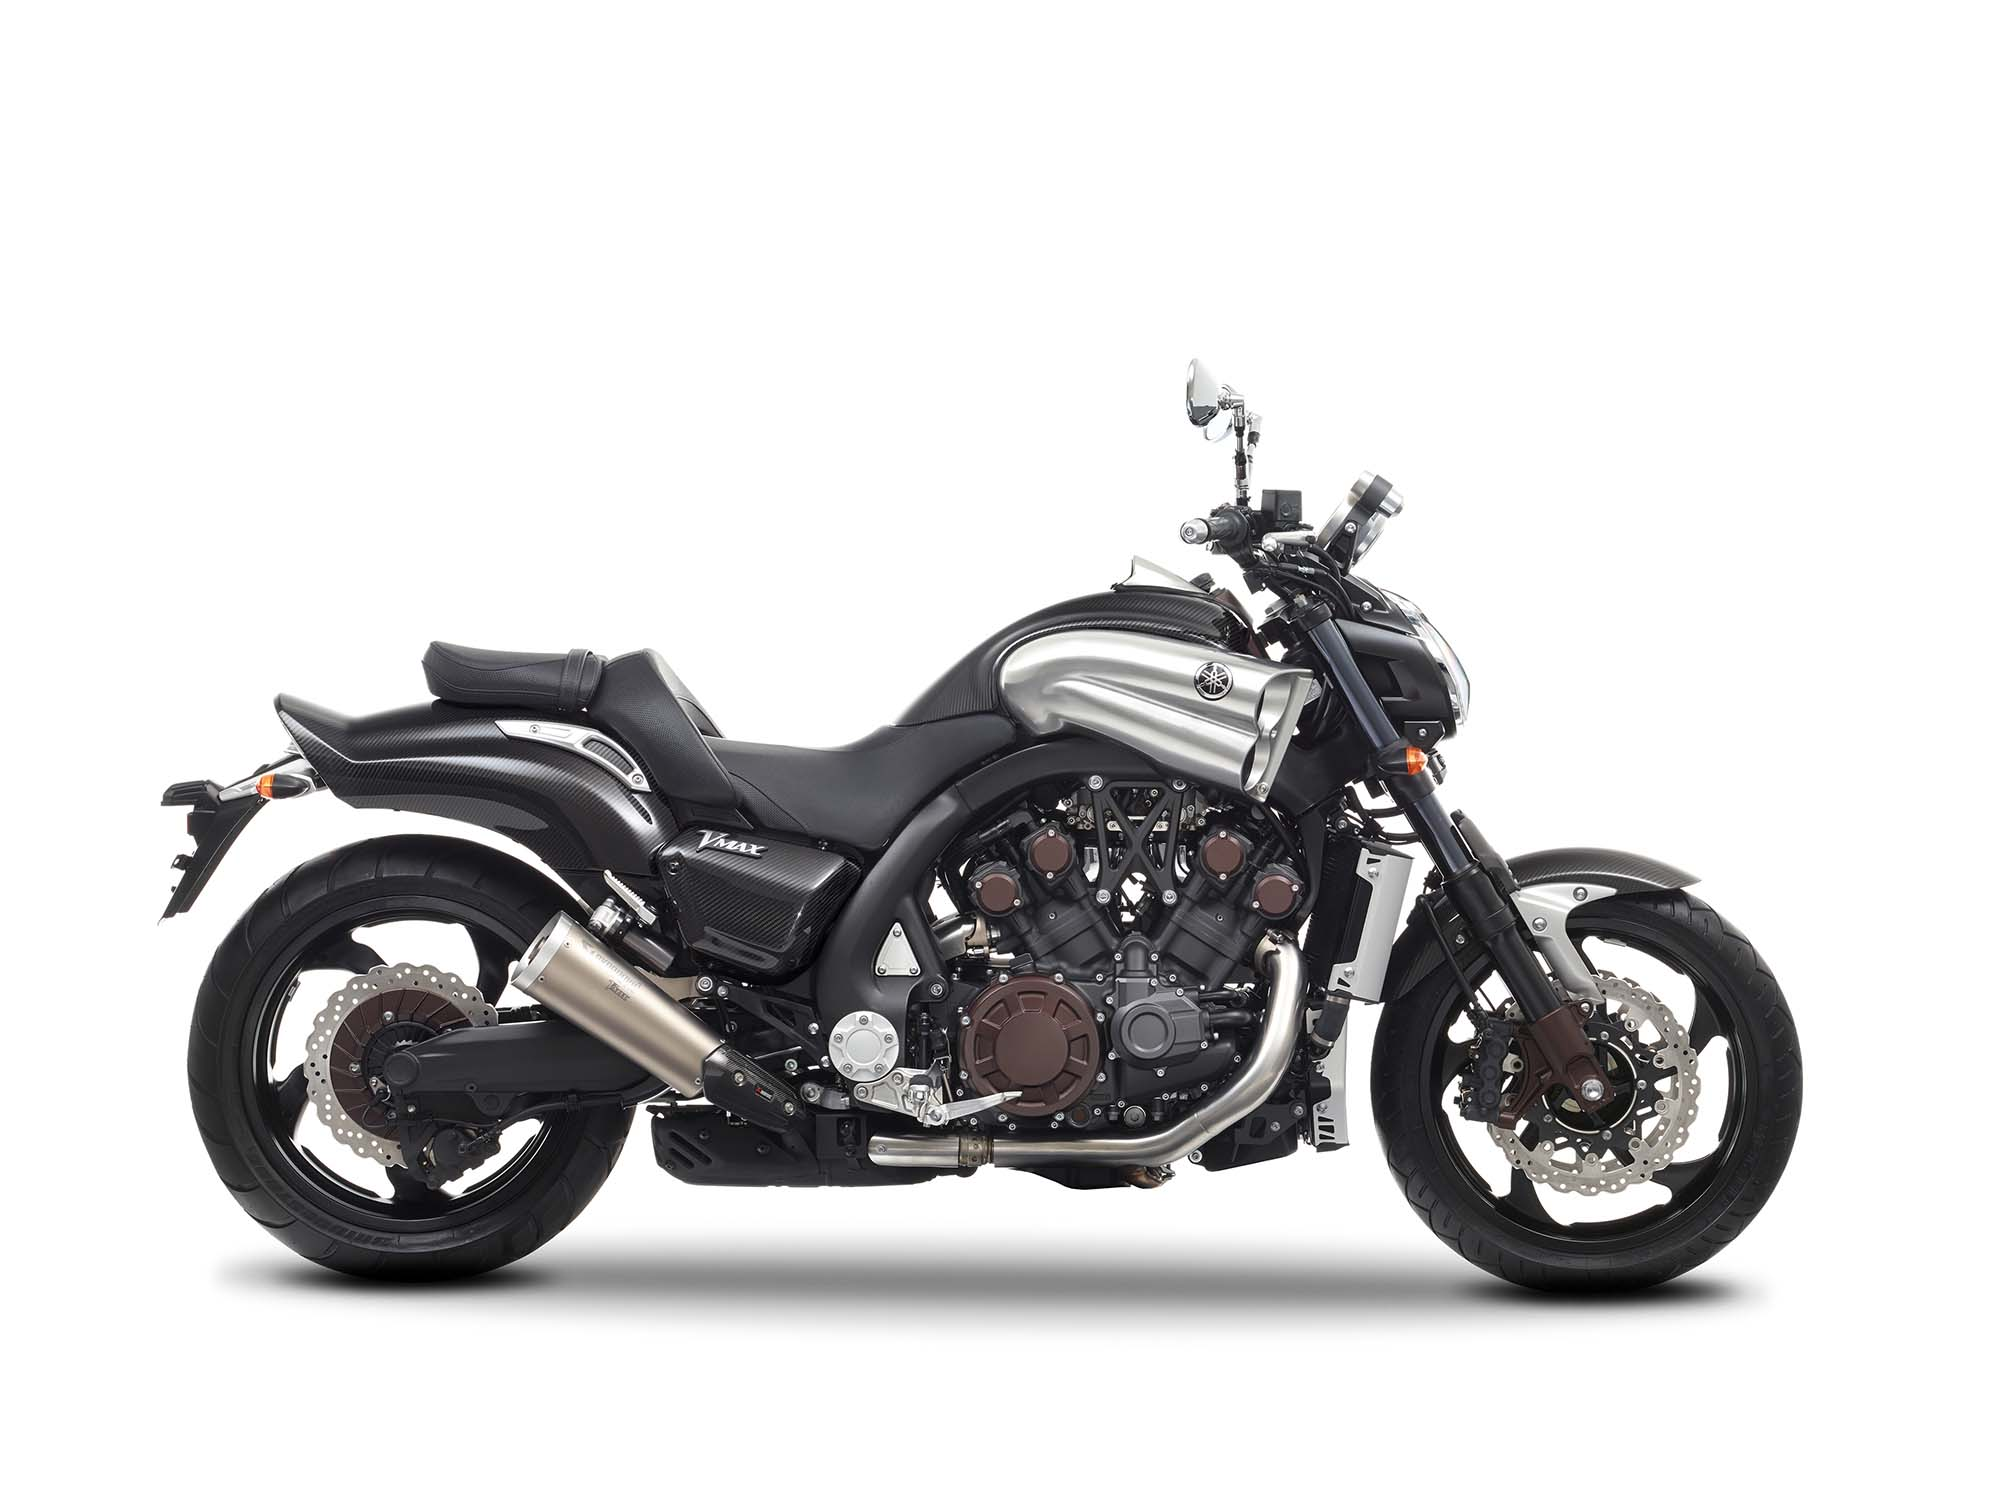 yamaha vmax carbon celebrating 30 years of vmax asphalt rubber. Black Bedroom Furniture Sets. Home Design Ideas